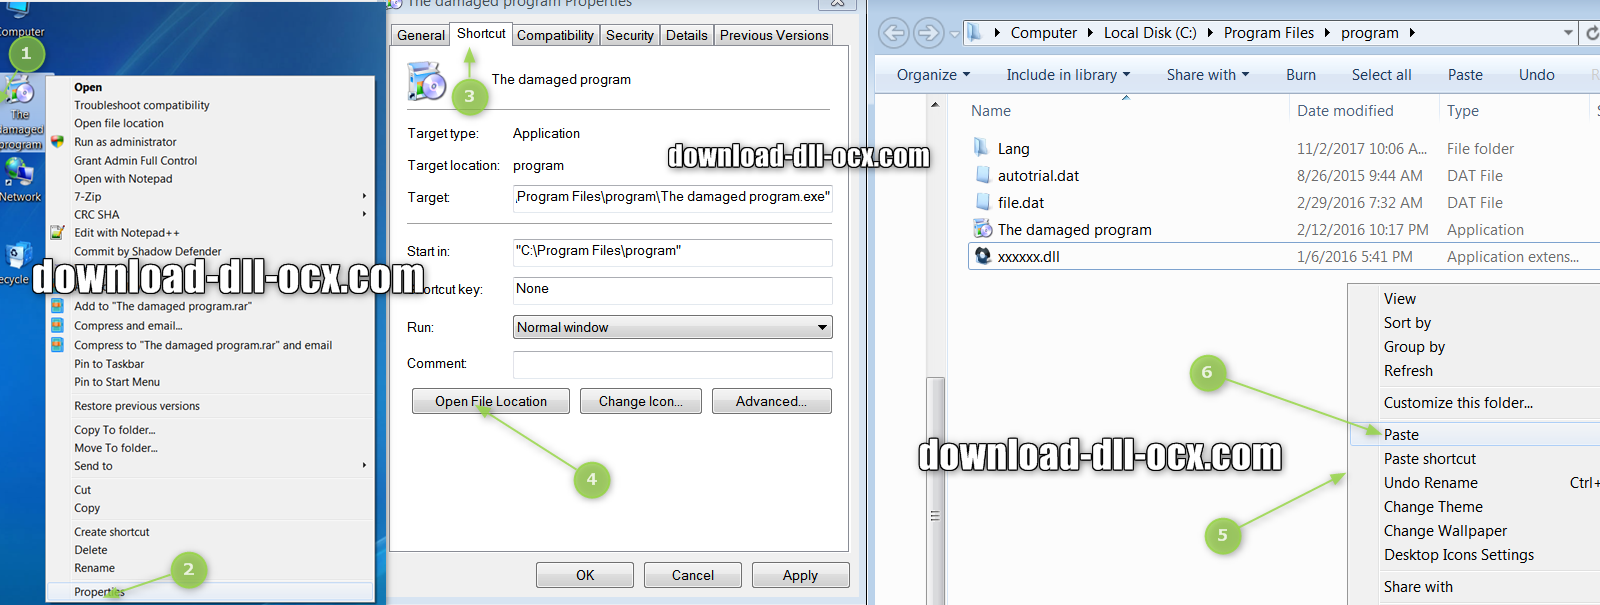 how to install Ipsecsnp.dll file? for fix missing